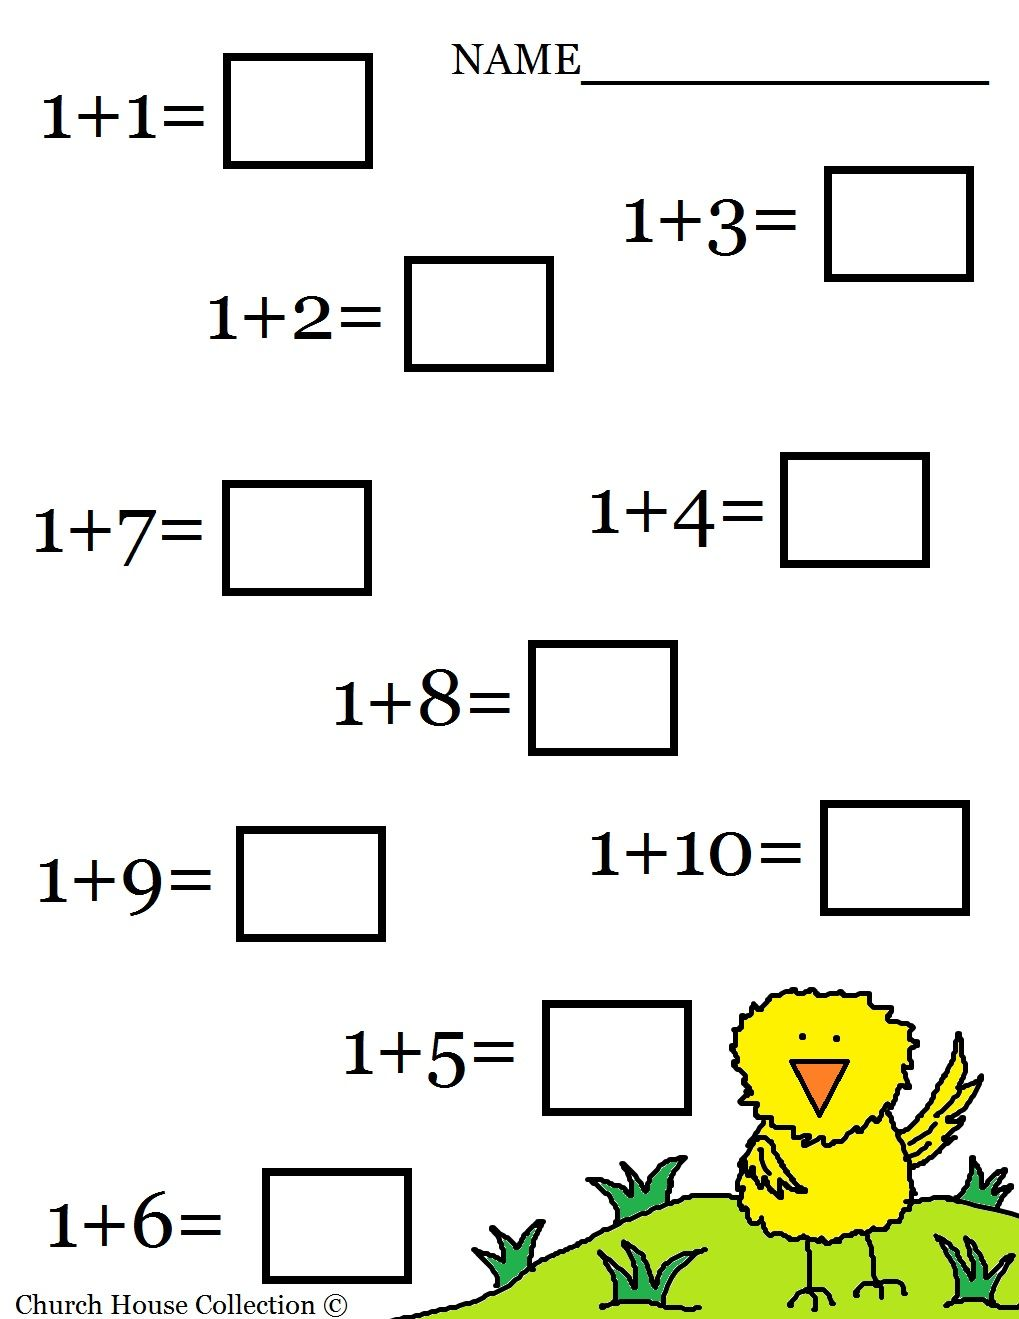 Aldiablosus  Pleasant  Images About Worksheets  Math On Pinterest  Math Sheets  With Fair  Images About Worksheets  Math On Pinterest  Math Sheets Math Worksheets For Kindergarten And Simple Addition With Adorable Math Division Worksheets For Th Grade Also Worksheet On Similes In Addition To Too And Two Worksheet And Passive Worksheet As Well As Solving Quadratic Equation Worksheets Additionally English Idioms Worksheet From Pinterestcom With Aldiablosus  Fair  Images About Worksheets  Math On Pinterest  Math Sheets  With Adorable  Images About Worksheets  Math On Pinterest  Math Sheets Math Worksheets For Kindergarten And Simple Addition And Pleasant Math Division Worksheets For Th Grade Also Worksheet On Similes In Addition To Too And Two Worksheet From Pinterestcom